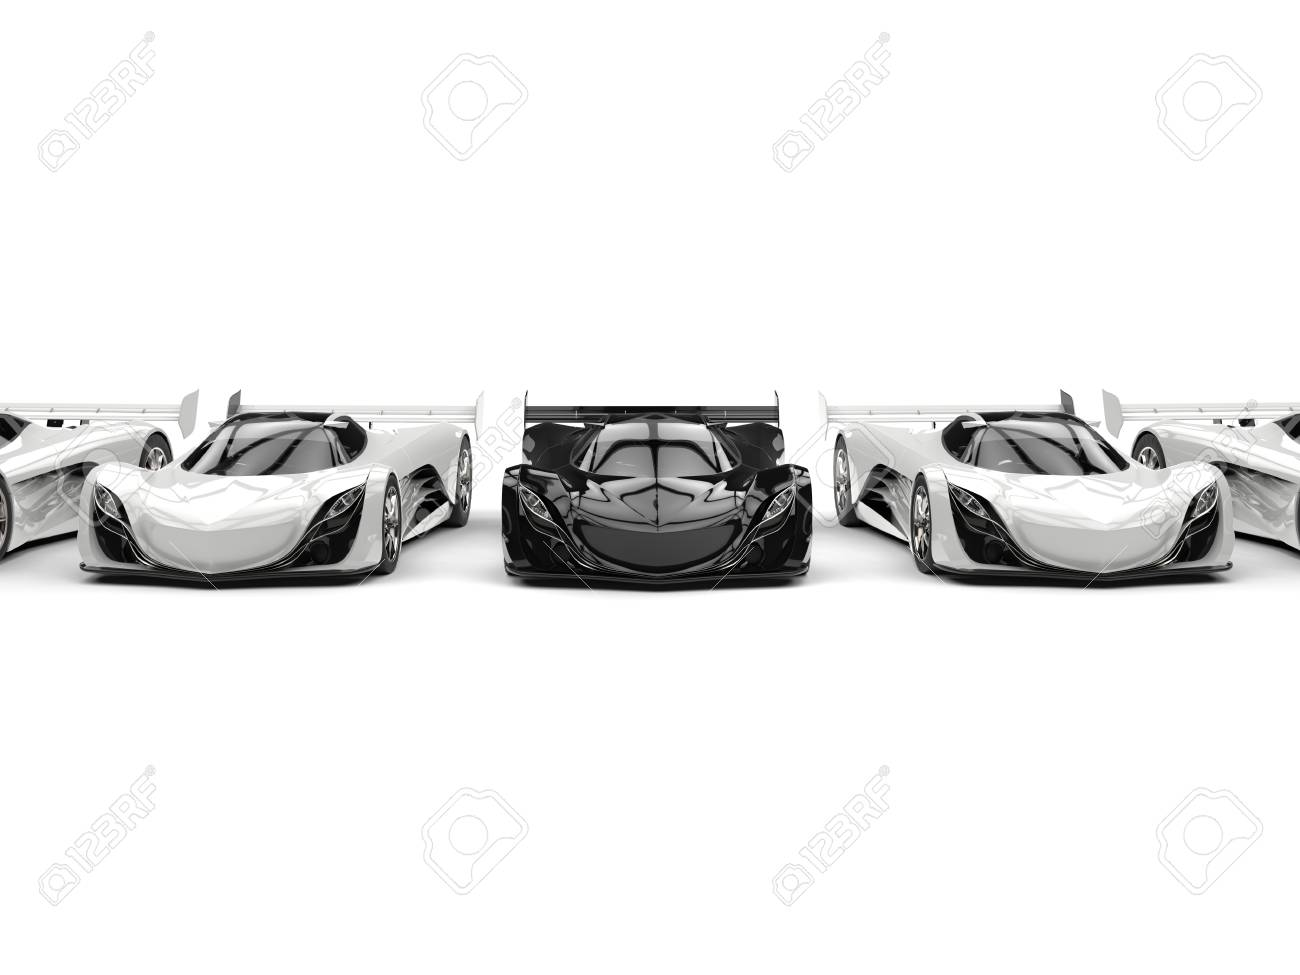 Awesome Futuristic Concept Sports Cars   Black And White Stock Photo    80505801